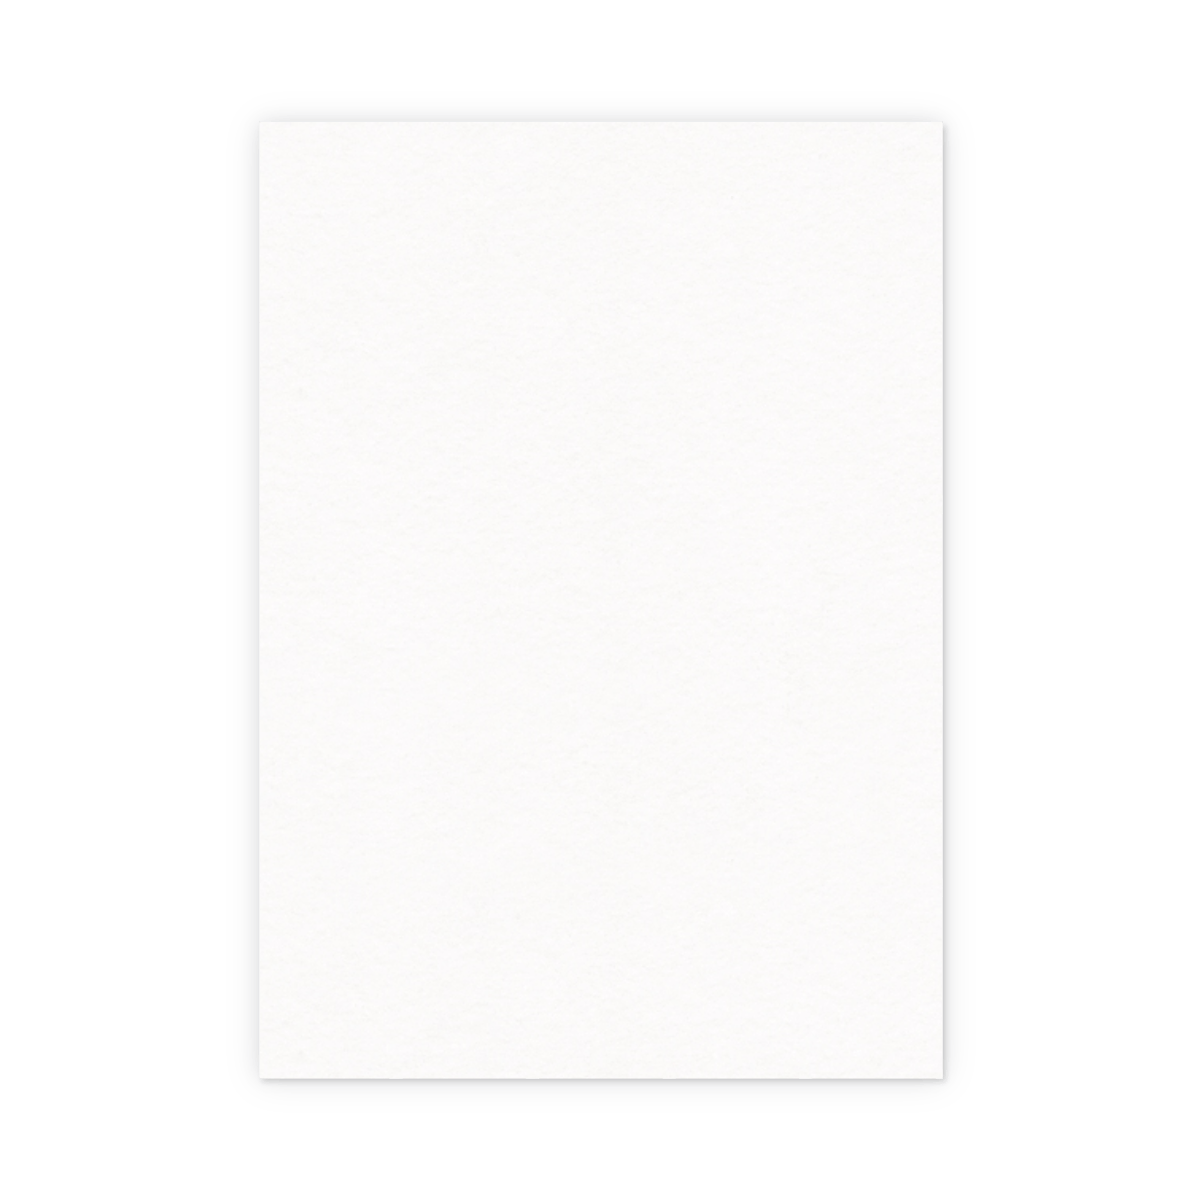 Https%3a%2f%2fwww.papier.com%2fproduct image%2f9802%2f4%2fblush border 2492 arriere 1534500895.png?ixlib=rb 1.1